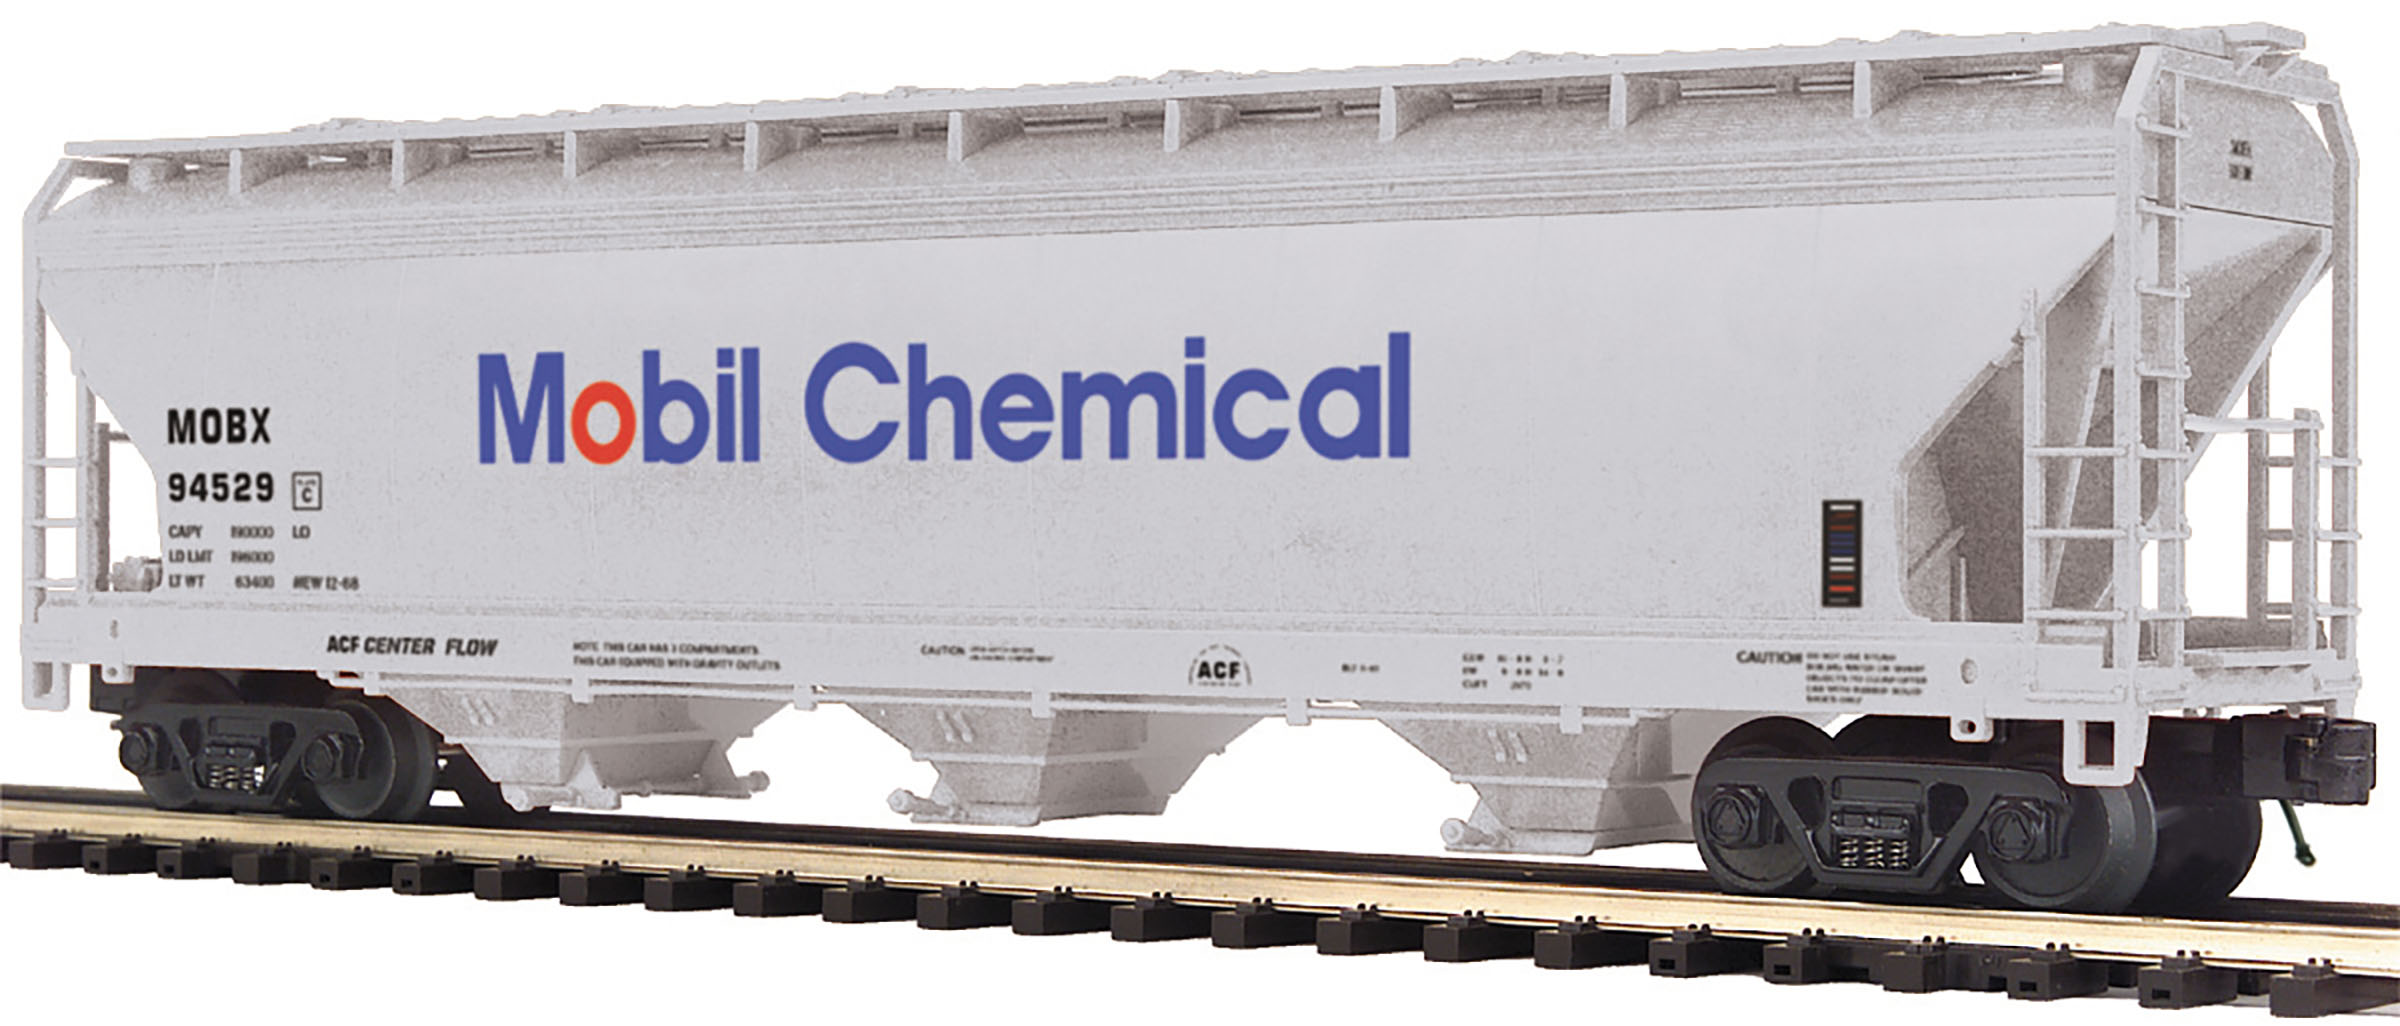 MTH 2097897 O 3-Bay Centerflow Hopper Mobil Chemical #94529 MTH2097897